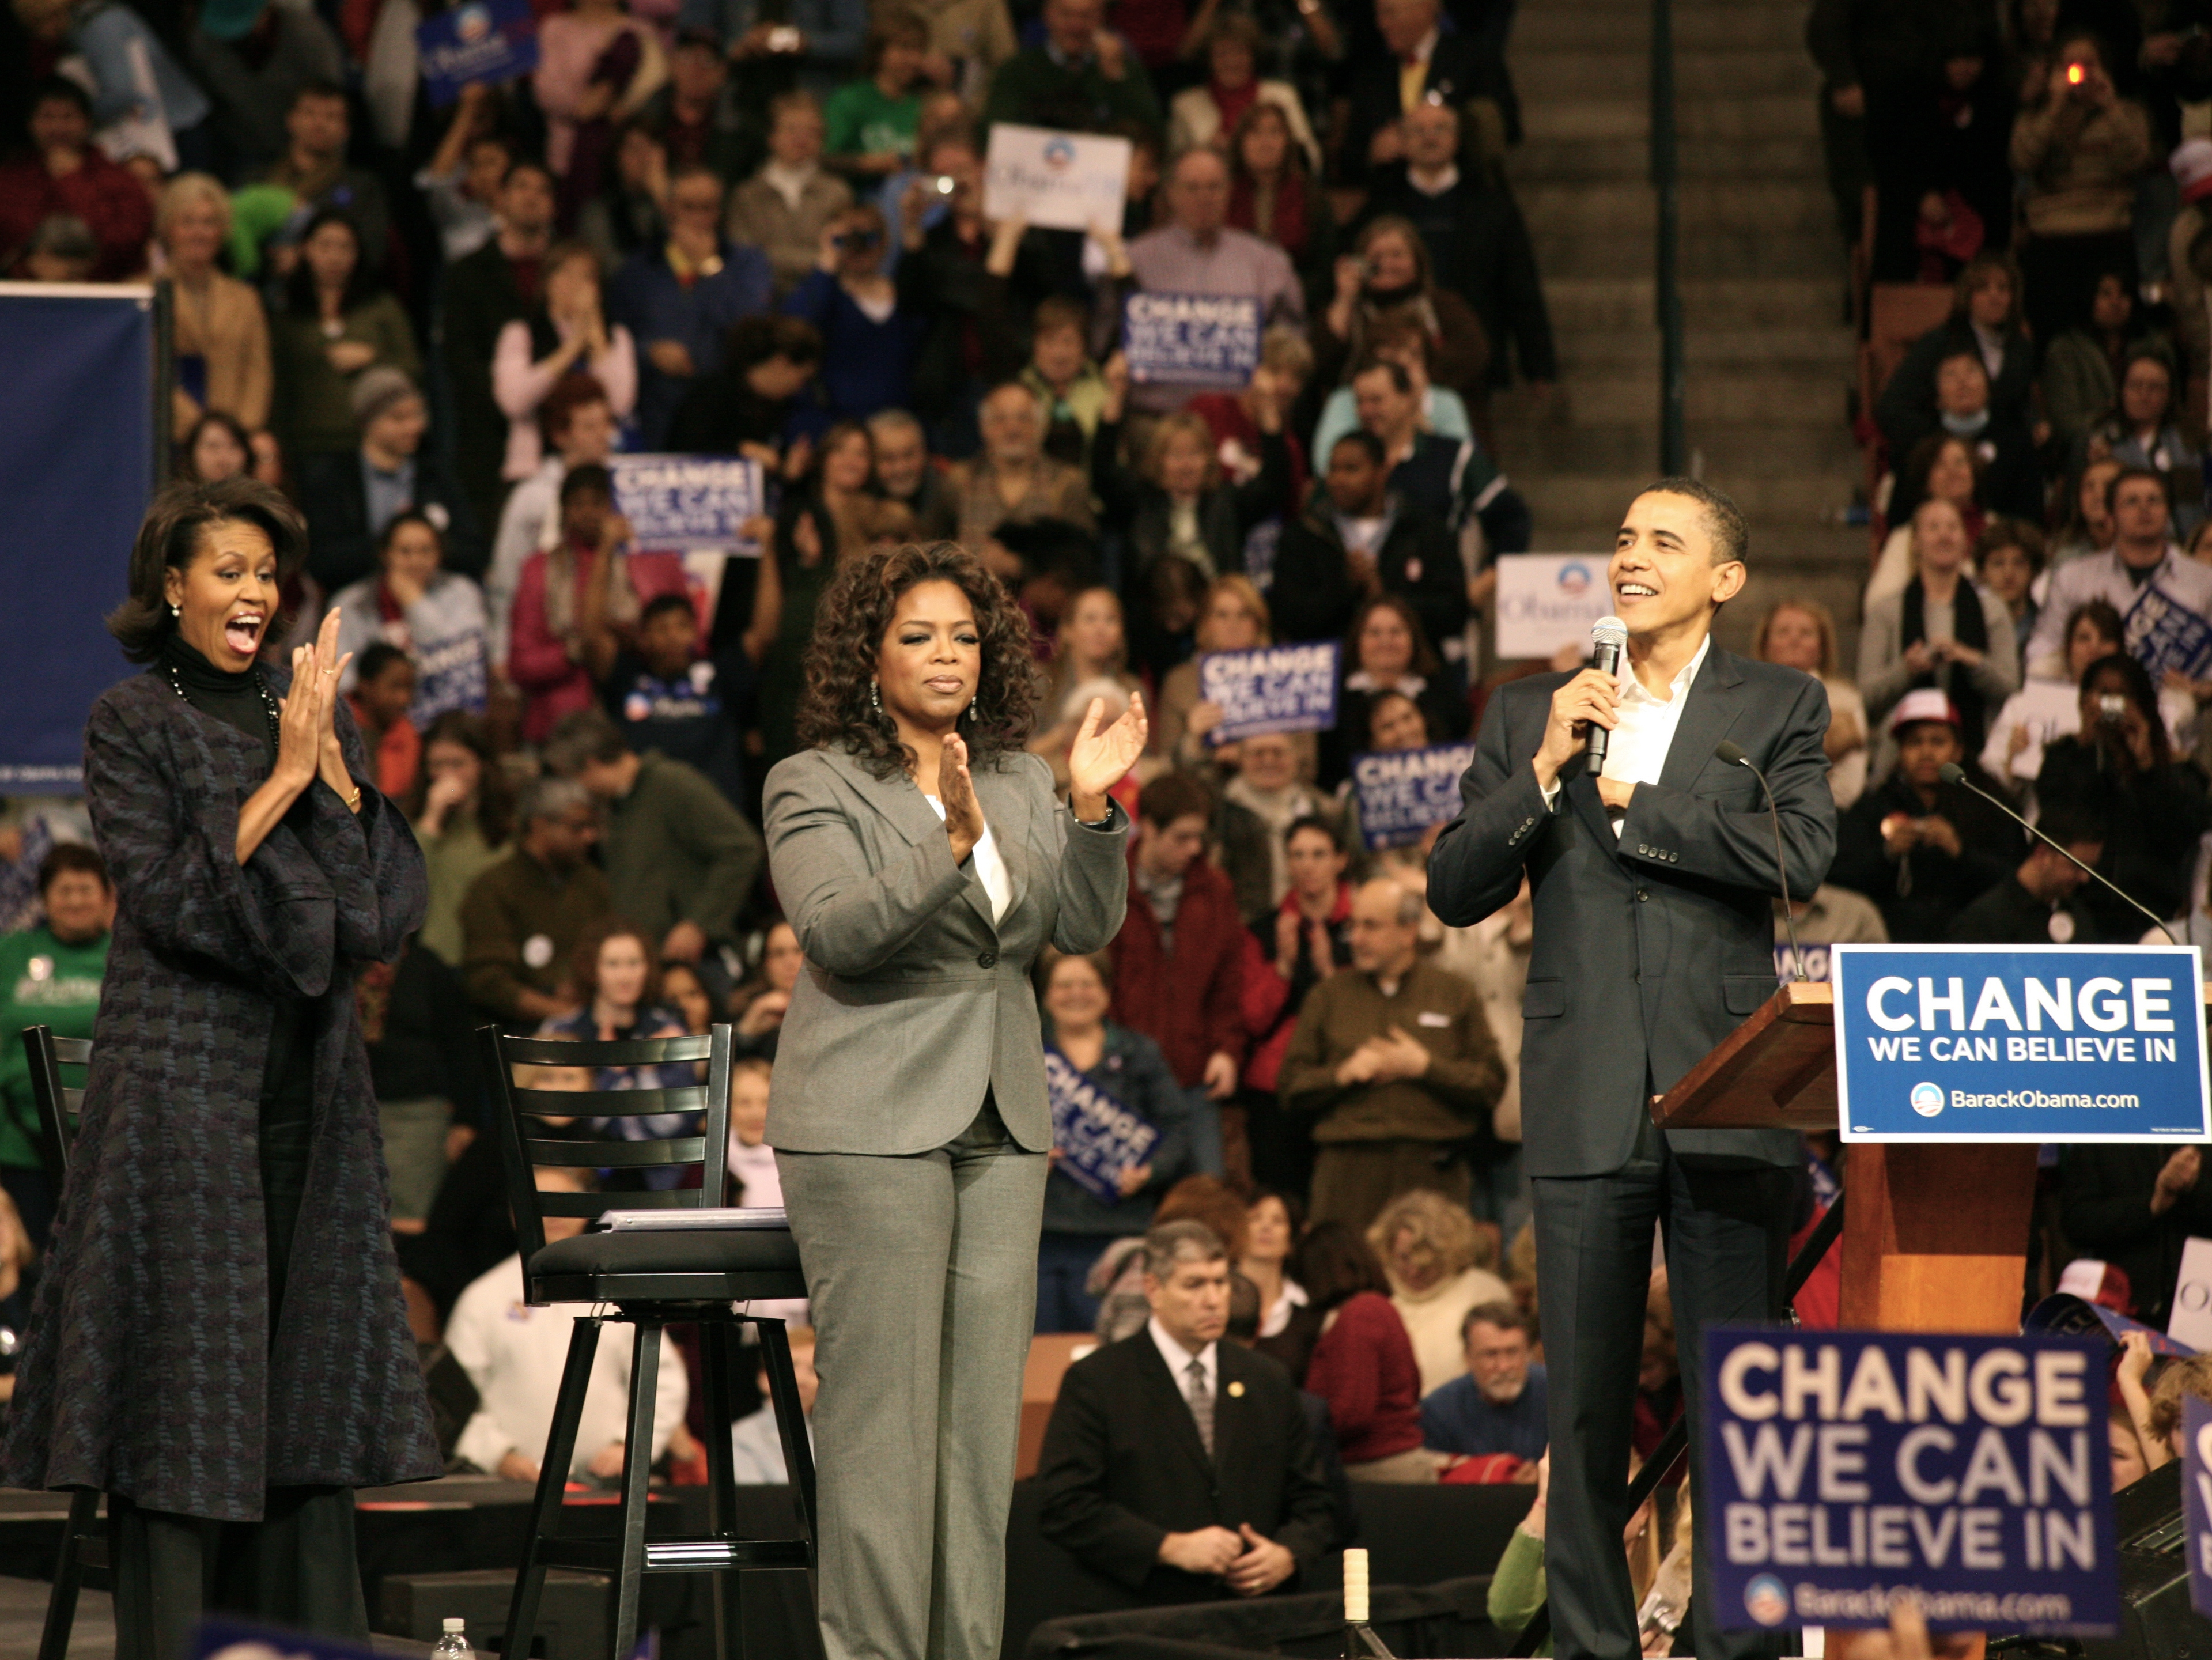 National Post: Oprah No Longer Marching in Obama's A-List Parade